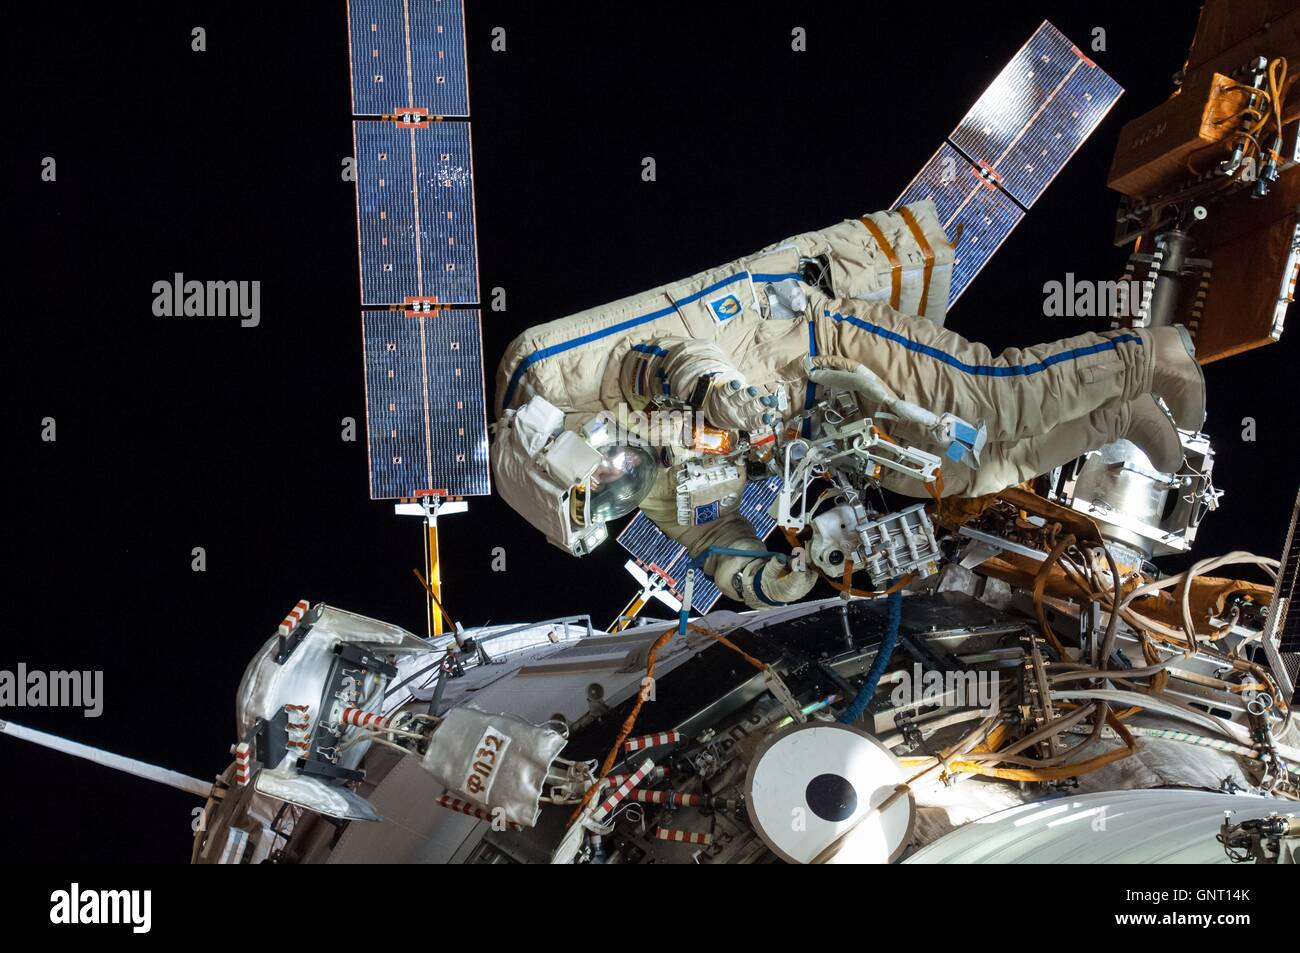 Russian cosmonaut Oleg Artemyev of International Space Station Expedition 40 during a spacewalk in his Russian Orlan - Stock Image